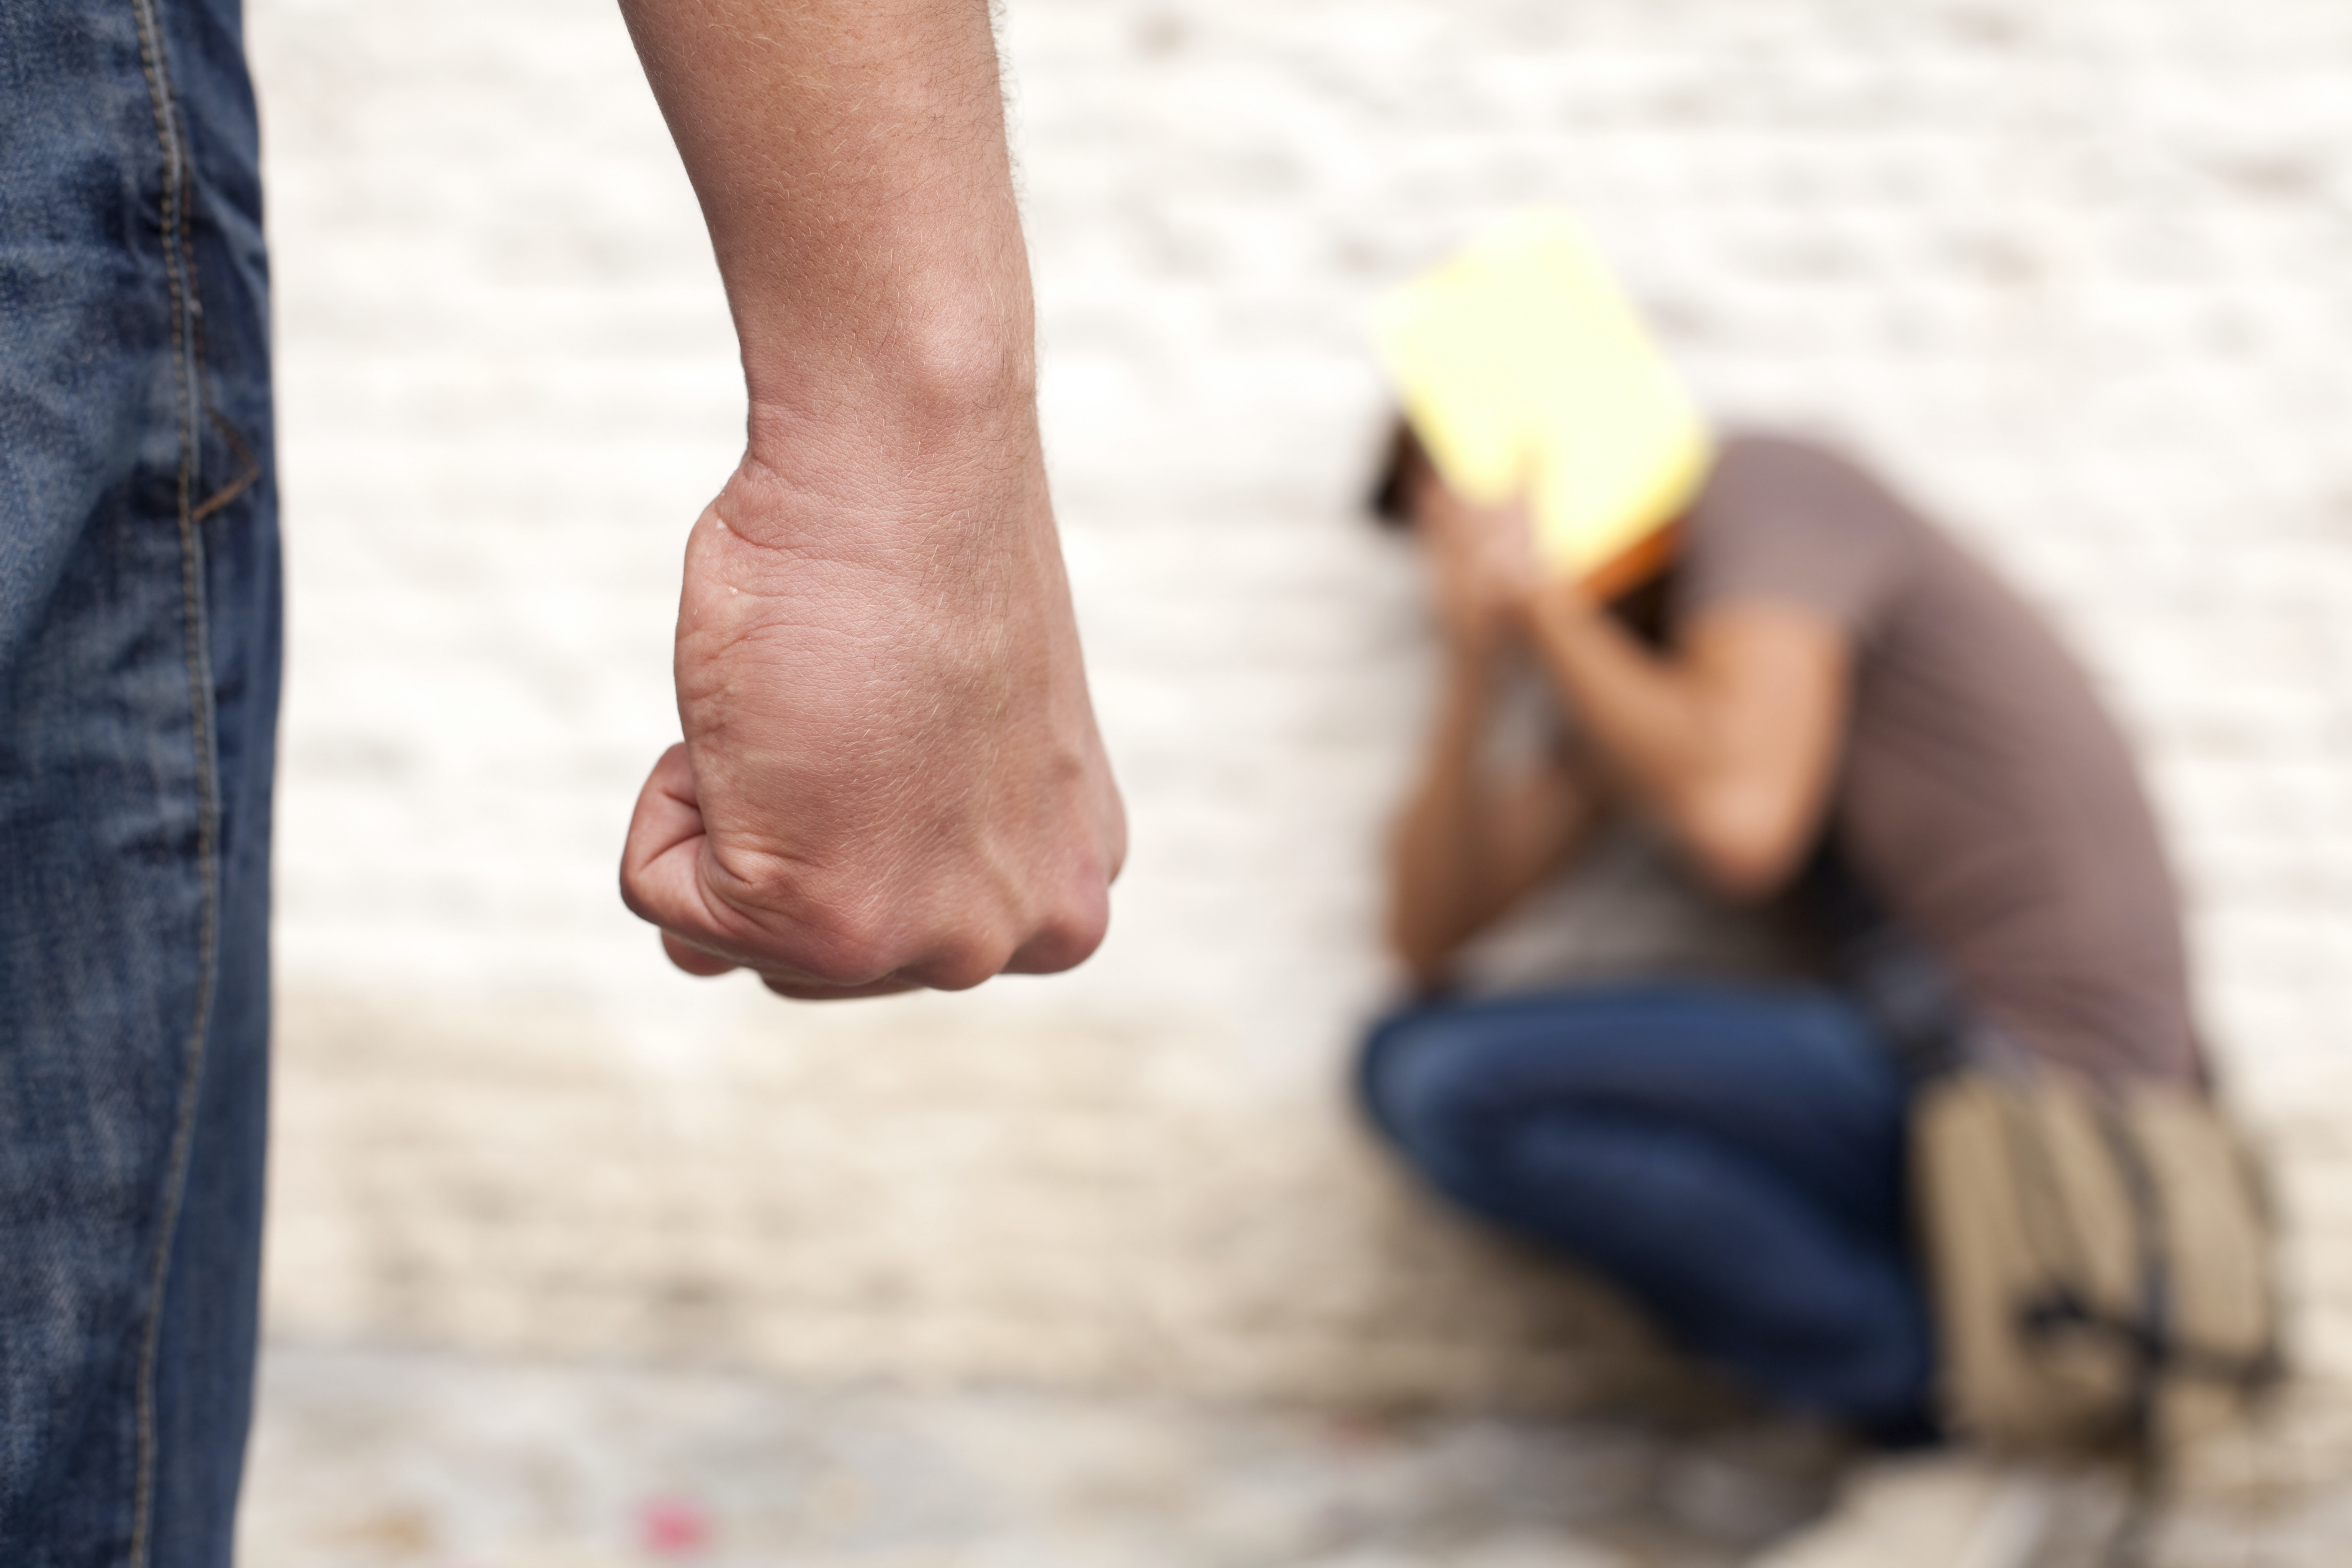 The health impact of childhood bullying can last a lifetime